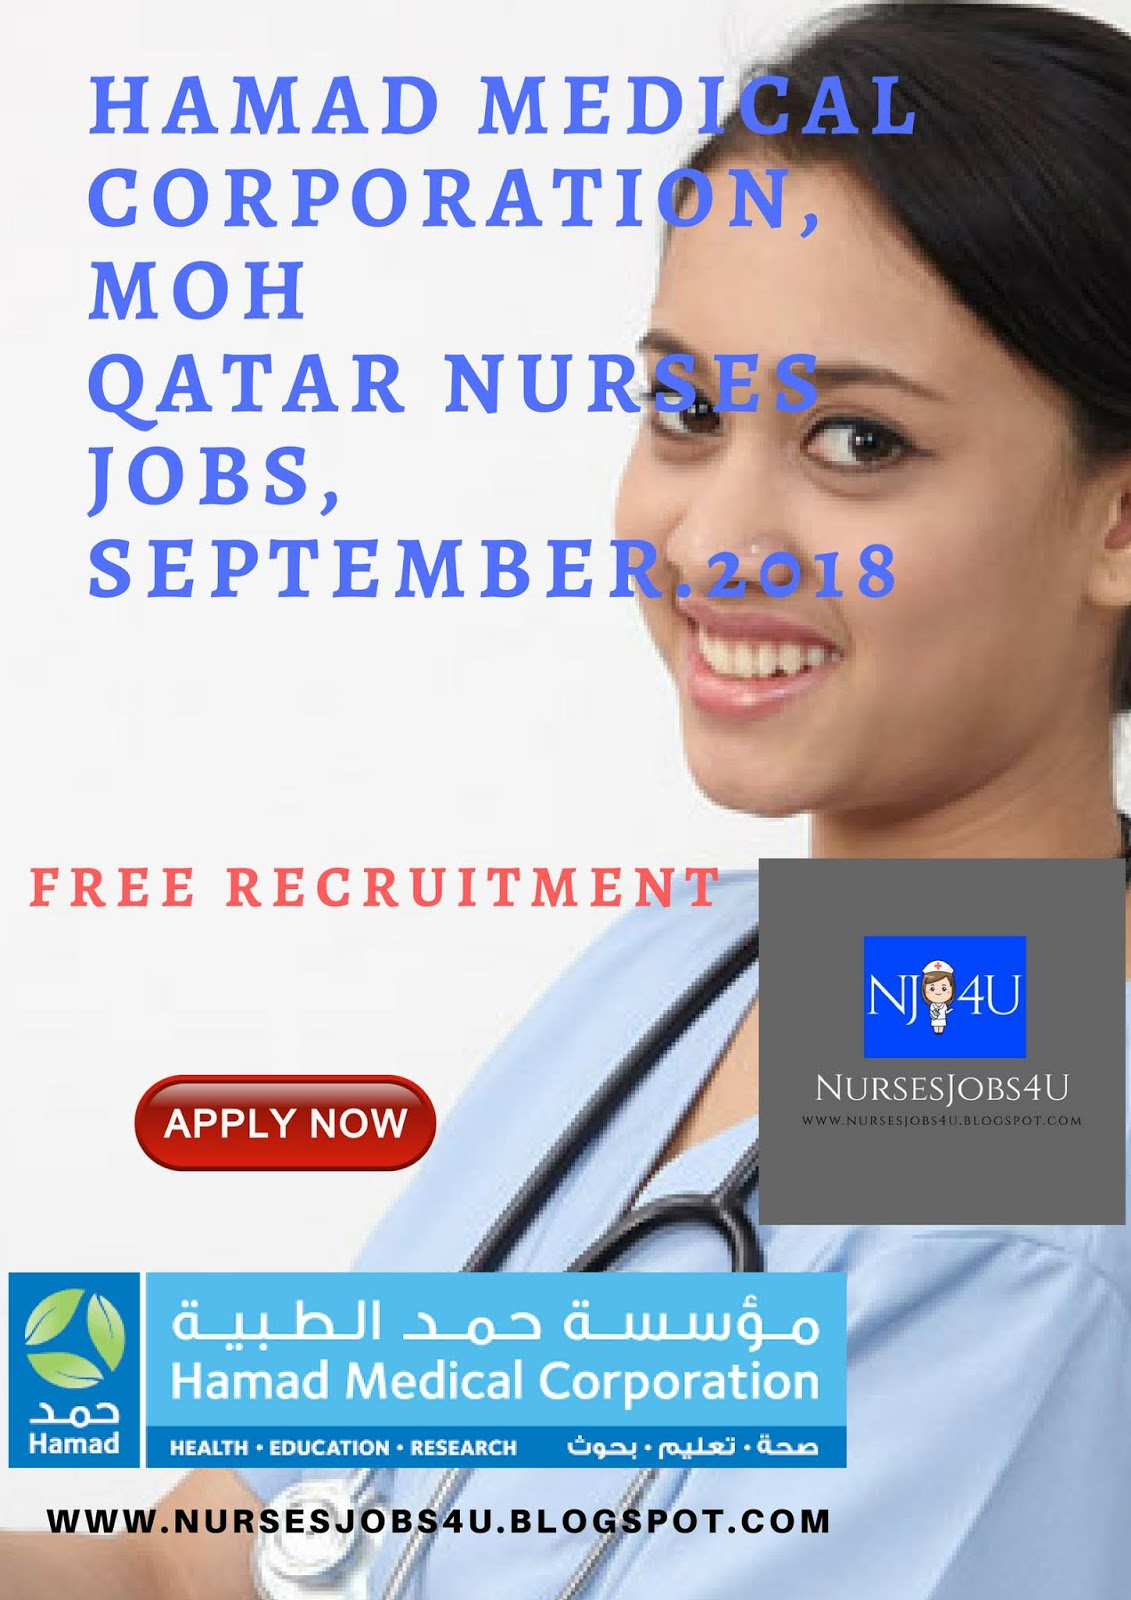 nursesjobs4u: HAMAD MEDICAL CORPORATION,MOH QATAR NURSES